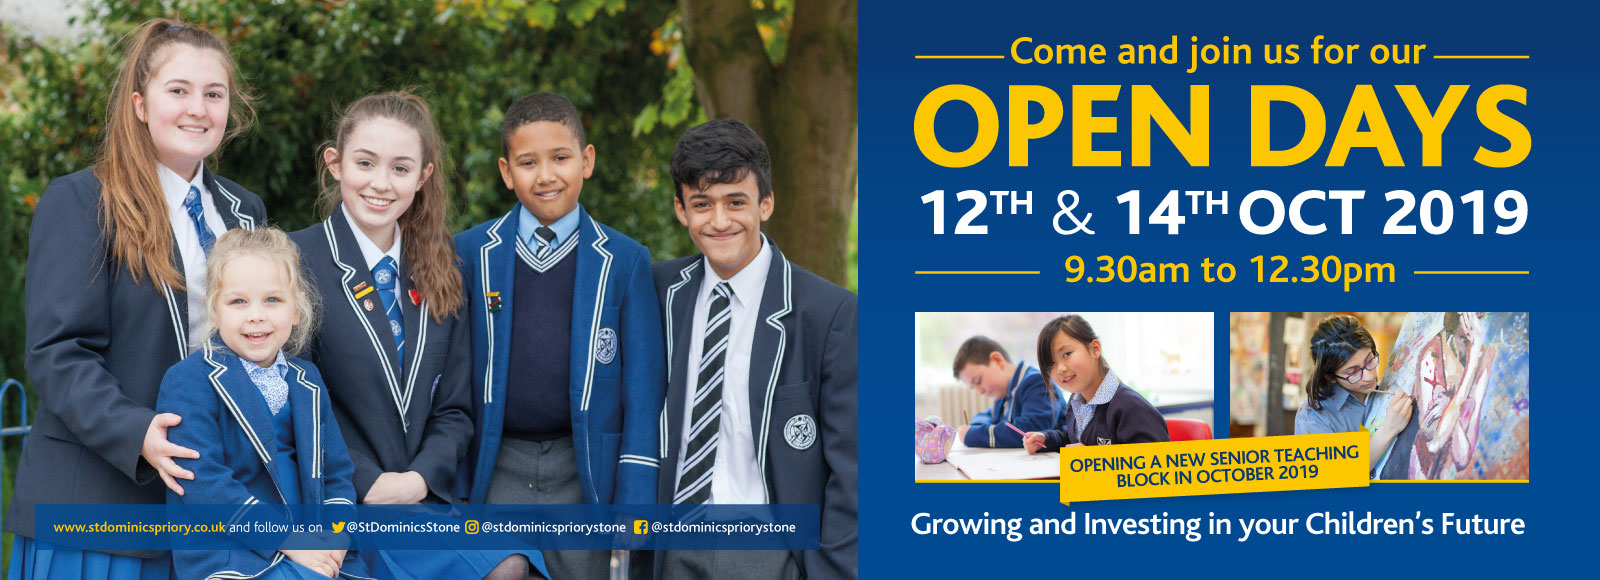 StDoms OCT OD web banner JULY19 AW